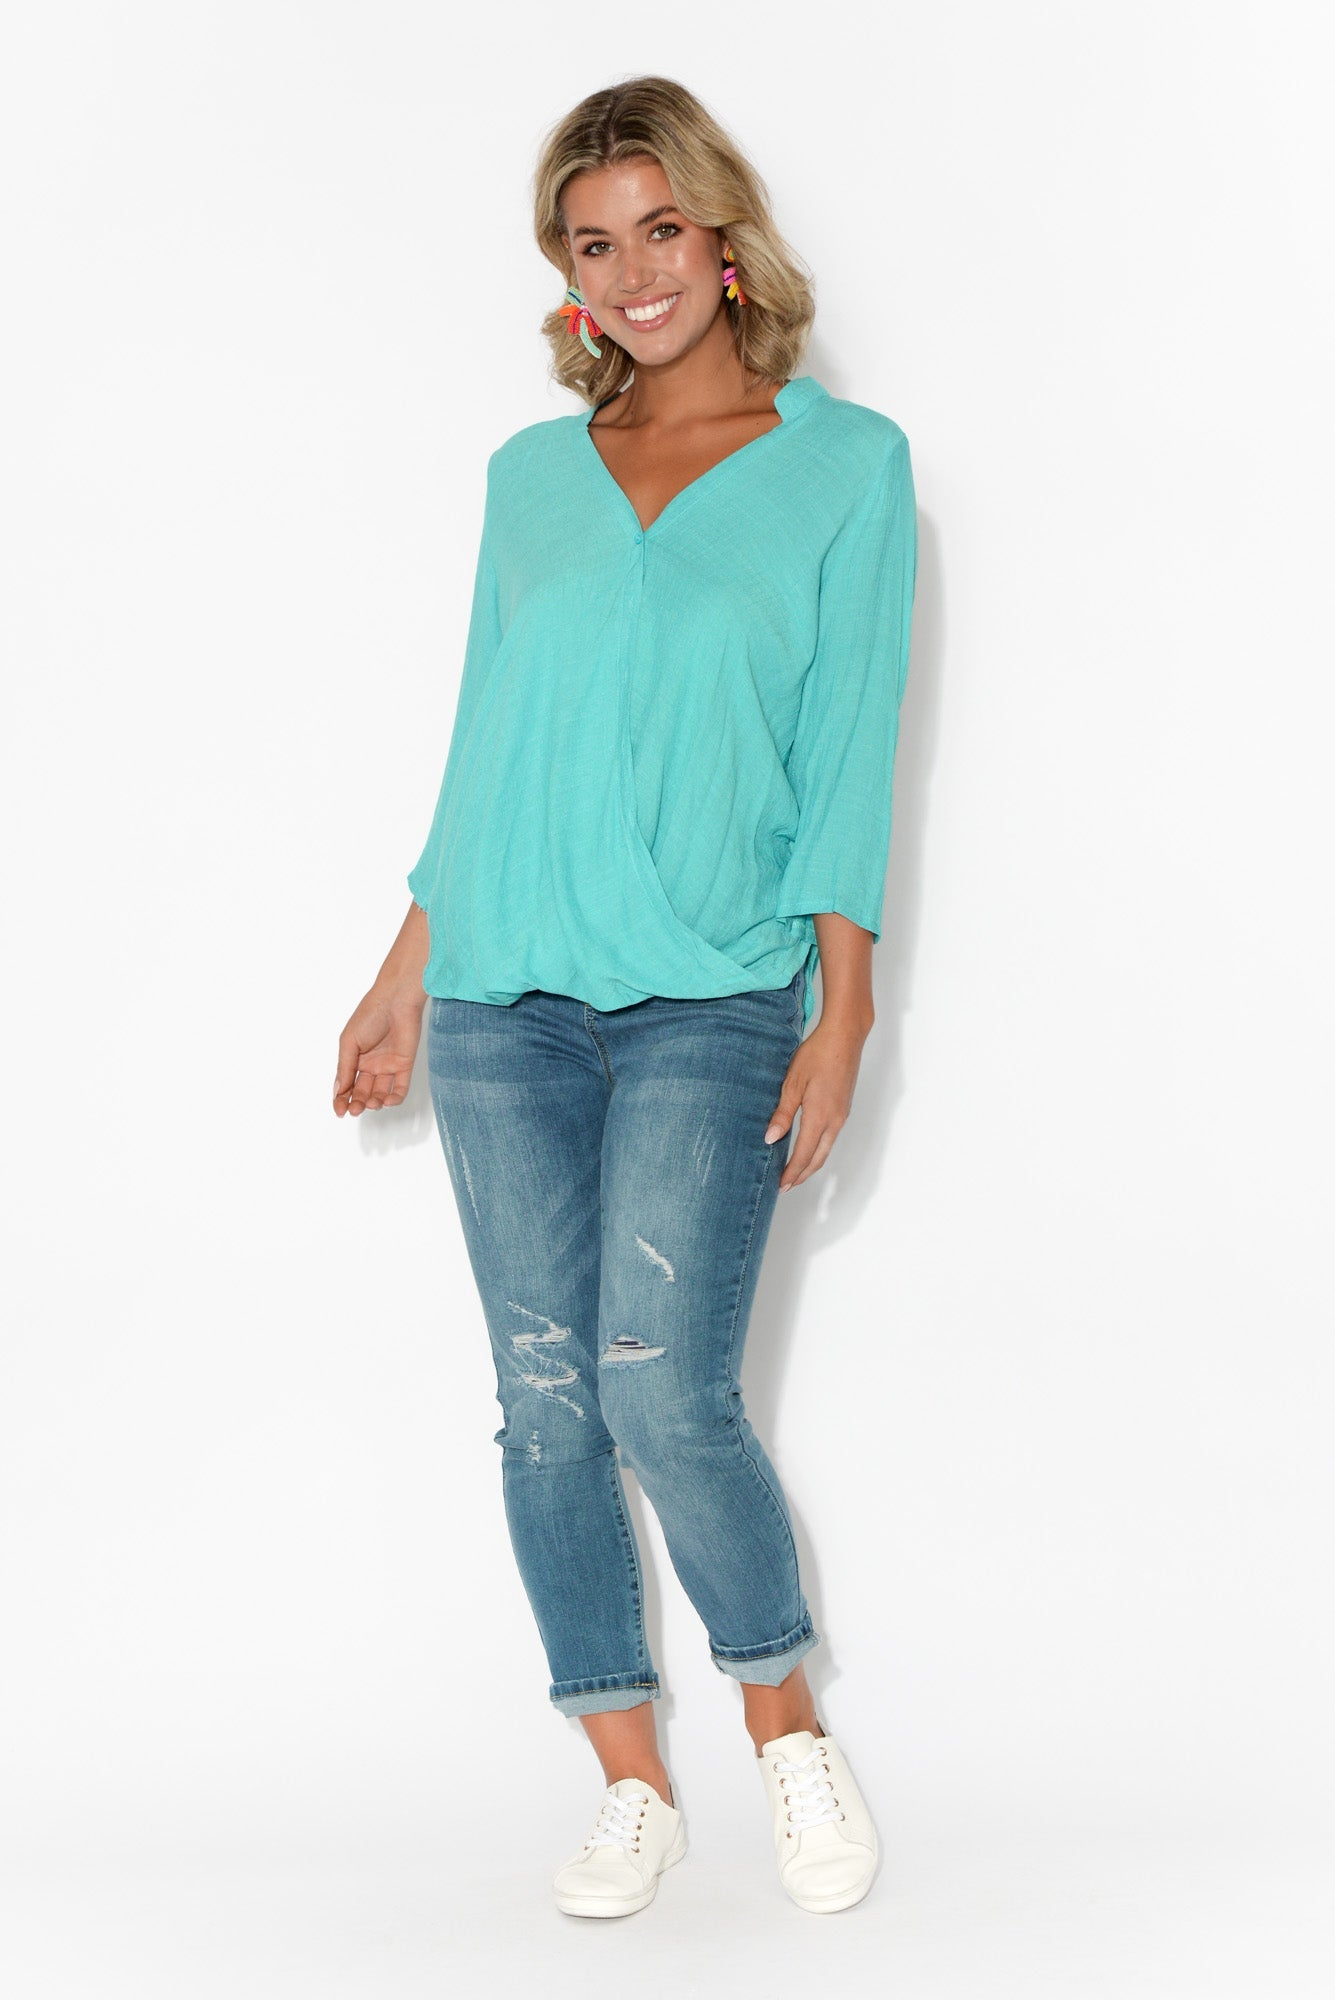 Cadence Turquoise Wrap Top